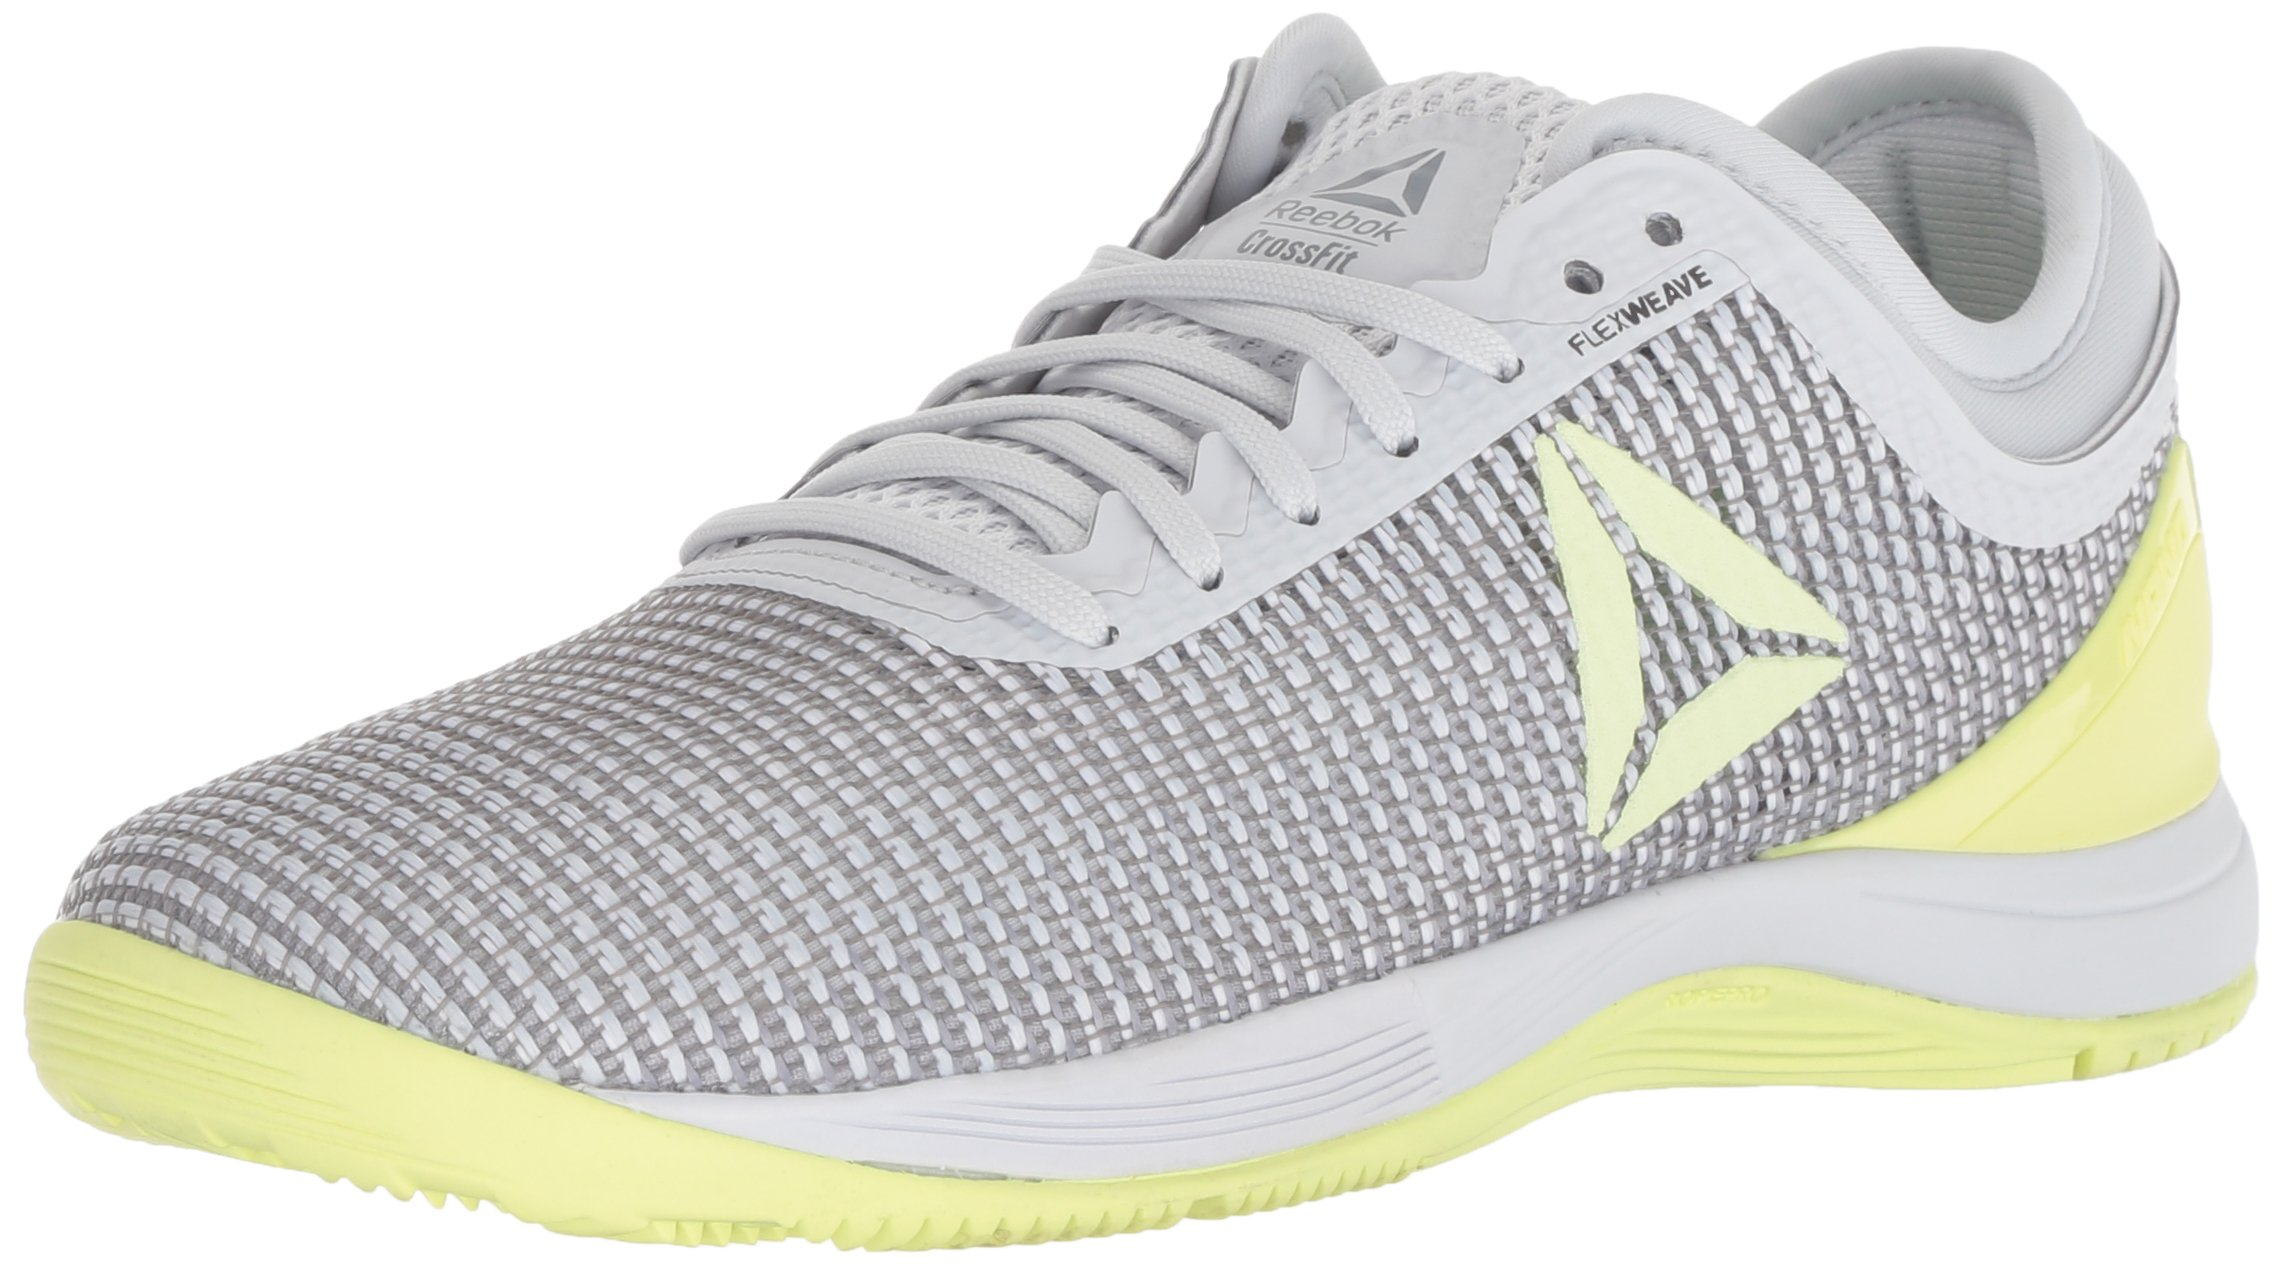 9f864908b2f Reebok Women s CROSSFIT Nano 8.0 Flexweave Cross Trainer product image